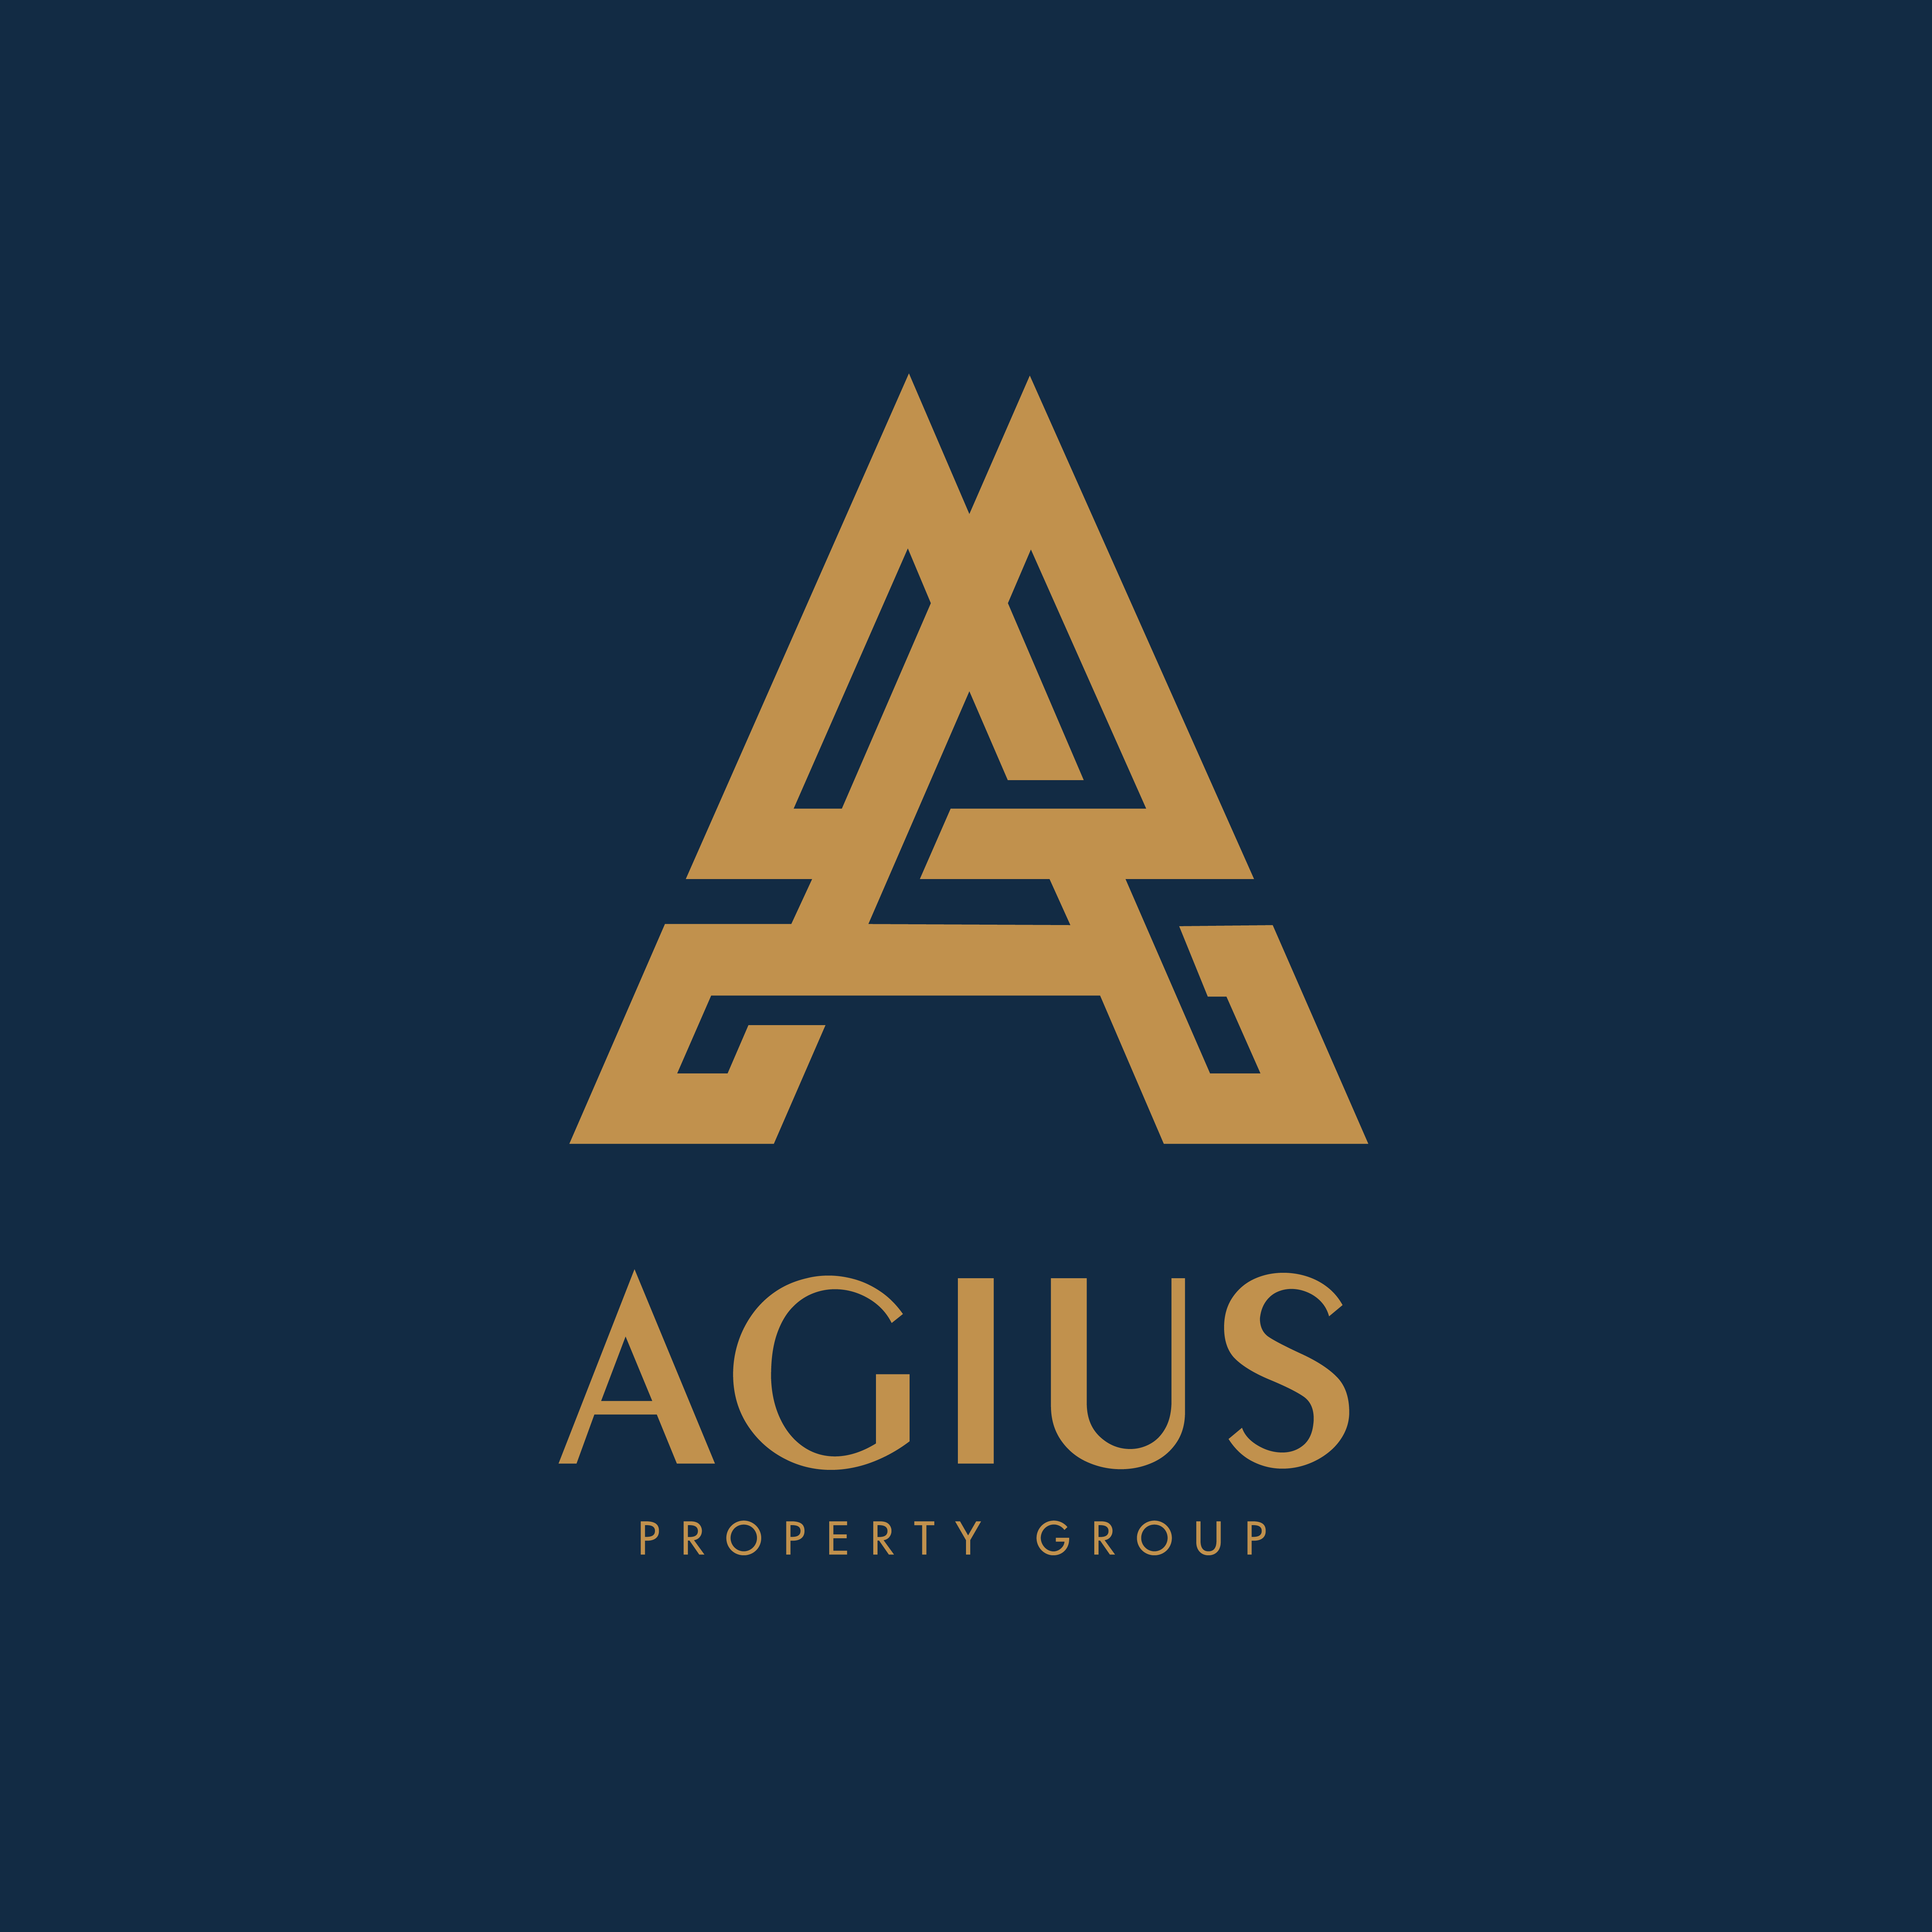 Agius Property Group -